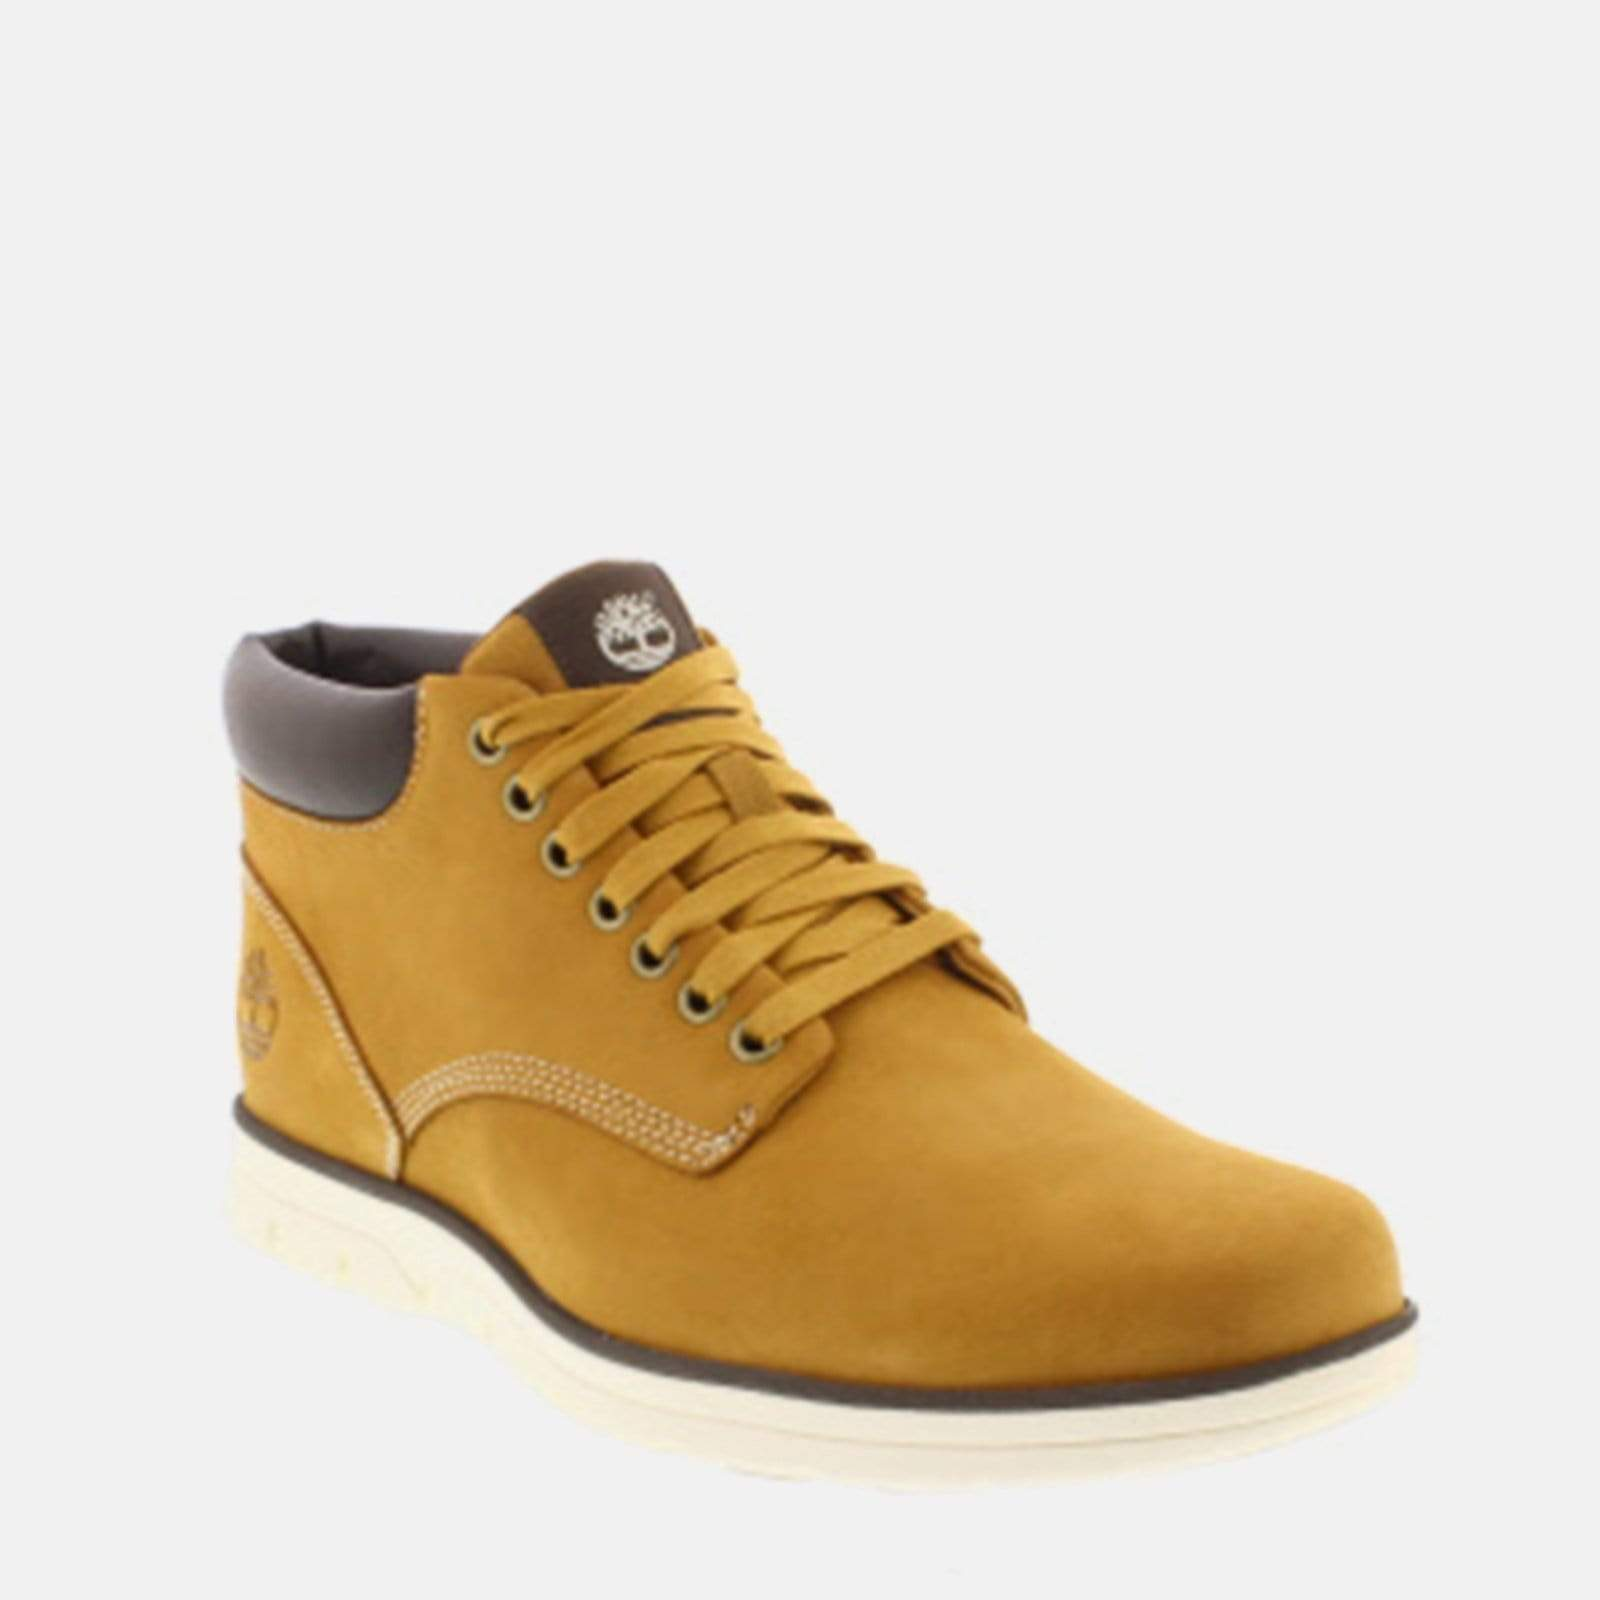 Timberland Footwear Bradstreet Chukka Leather CA1989 Wheat Nubuck